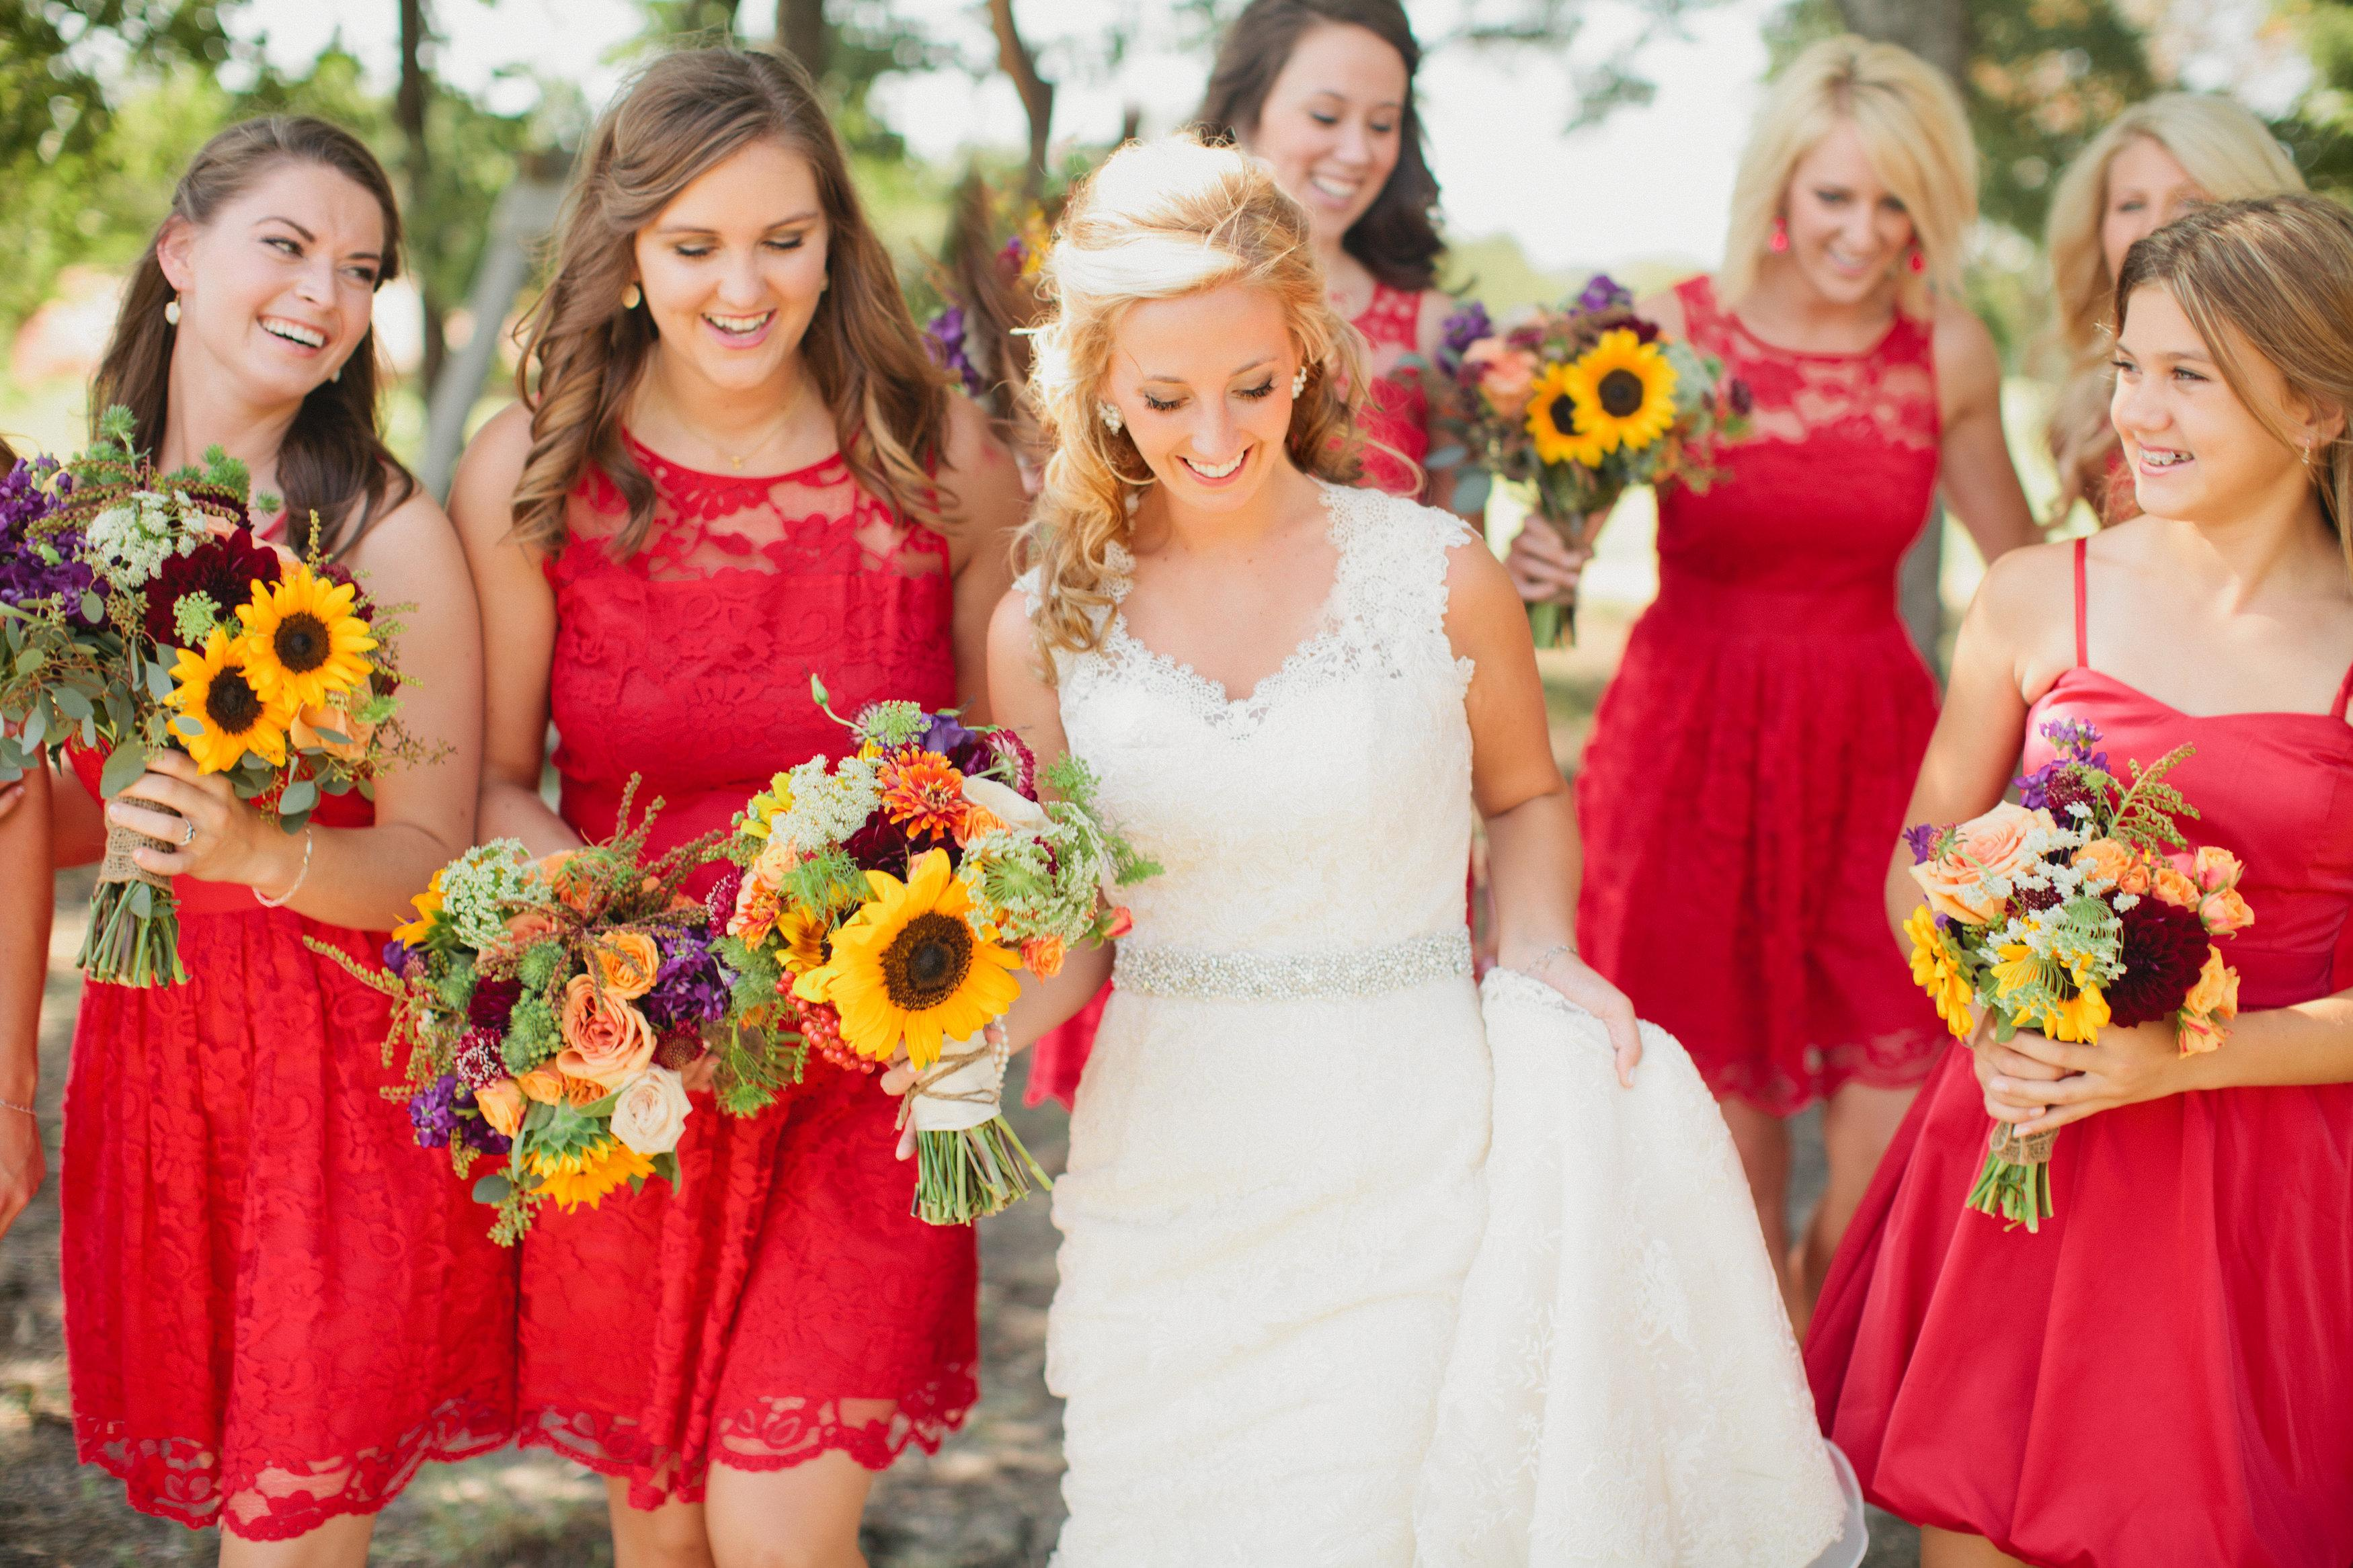 2015 spring summer mini lace bridesmaid dresses red sheer high 2015 spring summer mini lace bridesmaid dresses red sheer high neck short beach bridesmaid dress junior bridesmaids dresses cheap under 100 long ombrellifo Choice Image